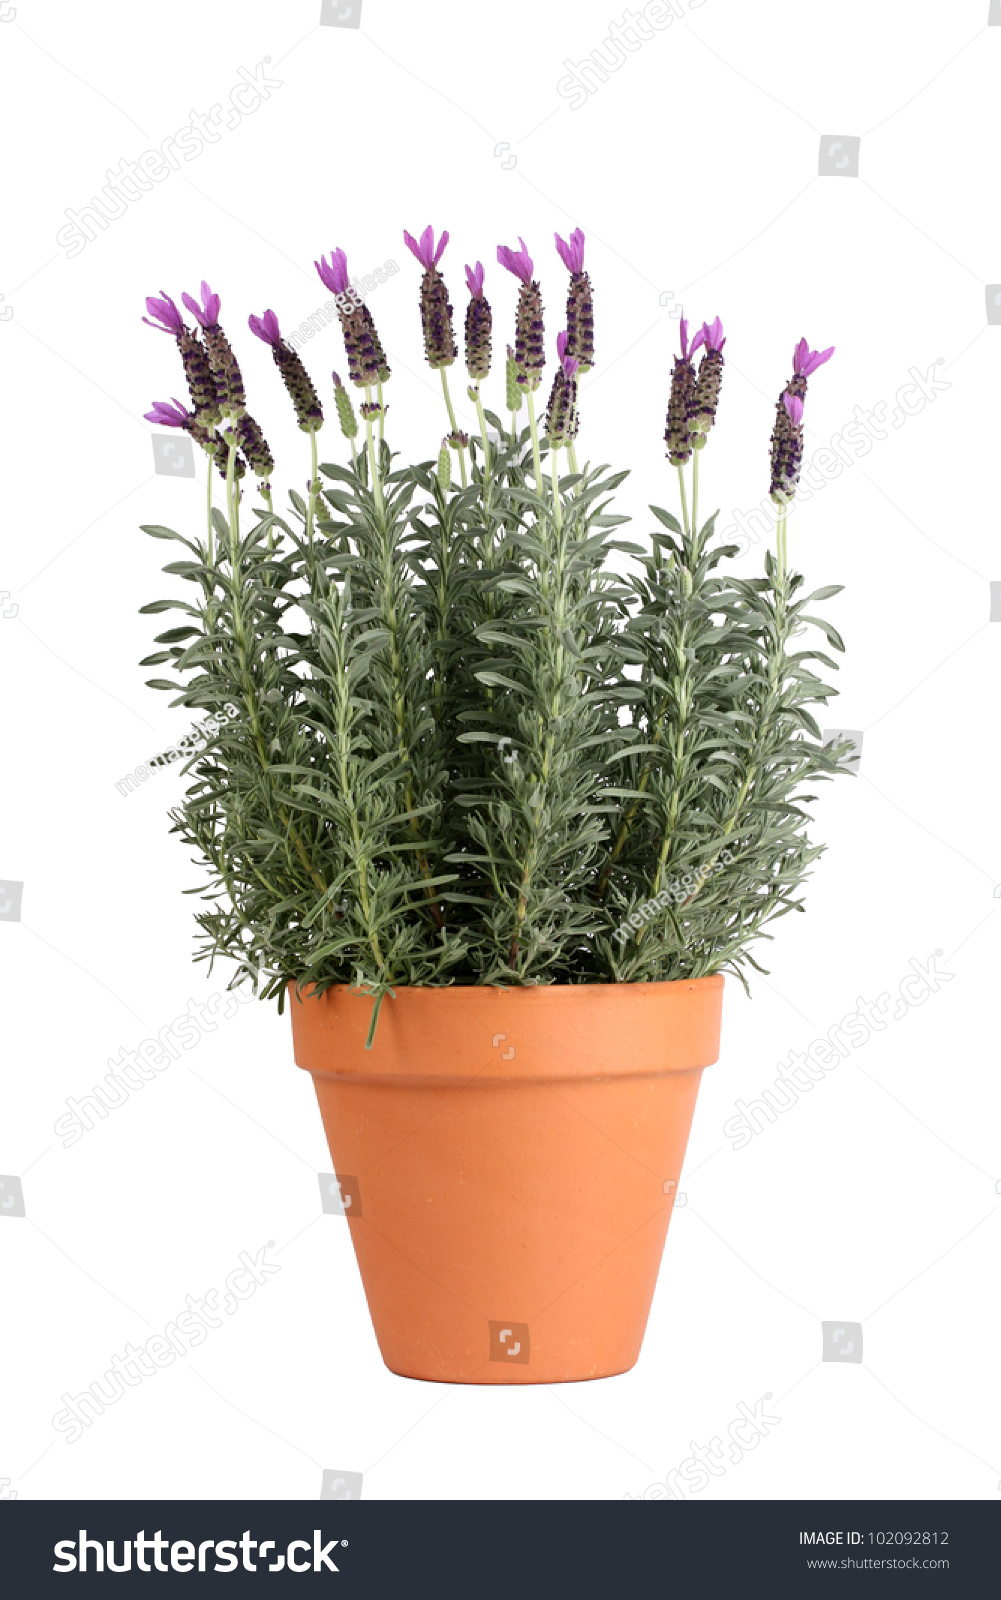 Lavender plant in pottery pot stock photo 102092812 shutterstock - Growing lavender pot ...